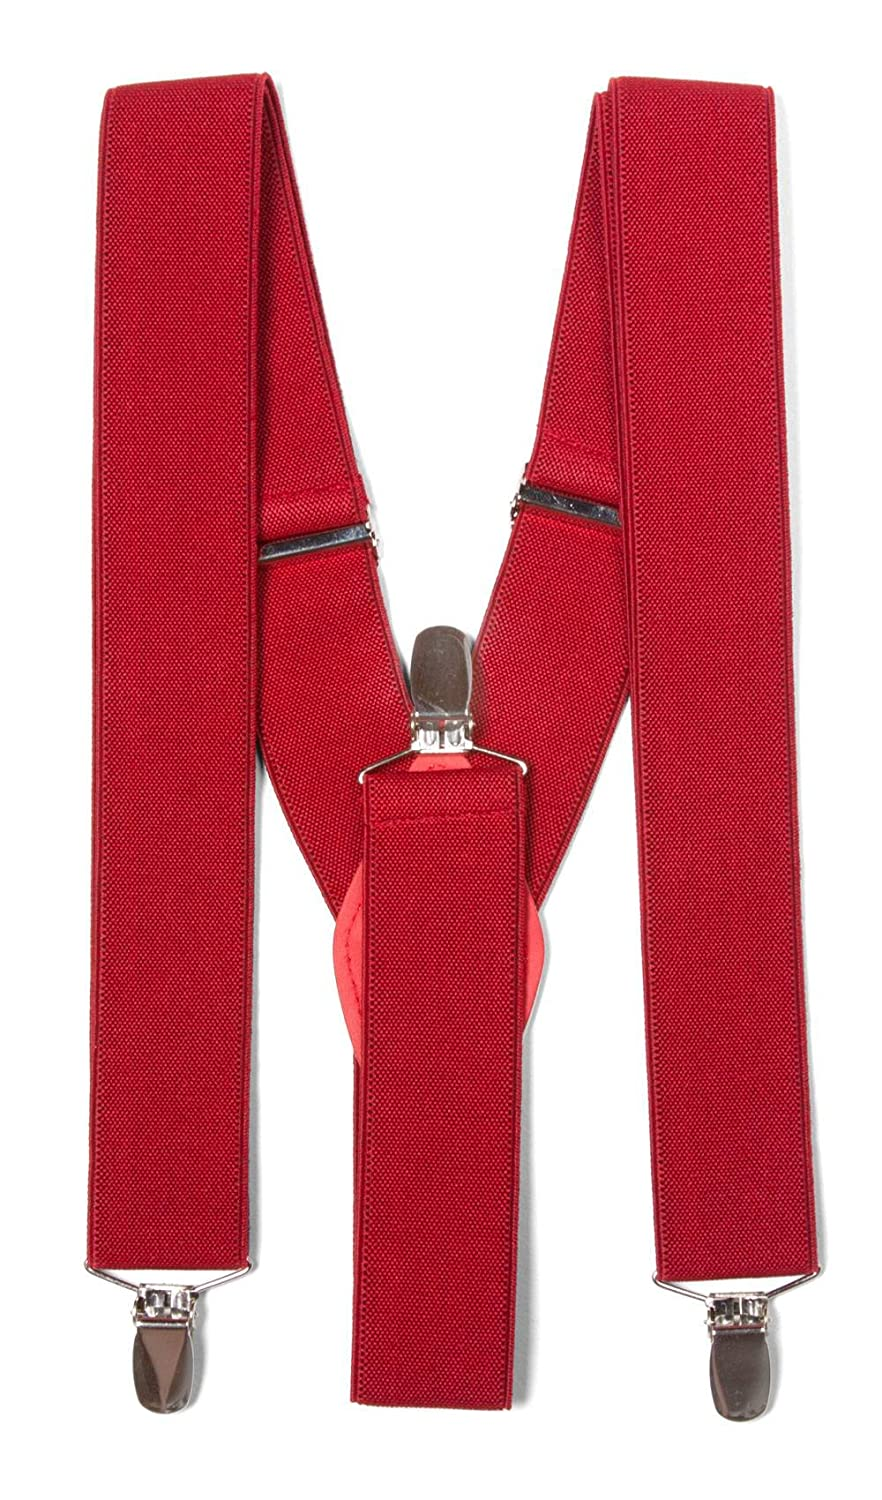 Gravity Threads Classic 1.36 Inch Wide Clip Suspenders Navy